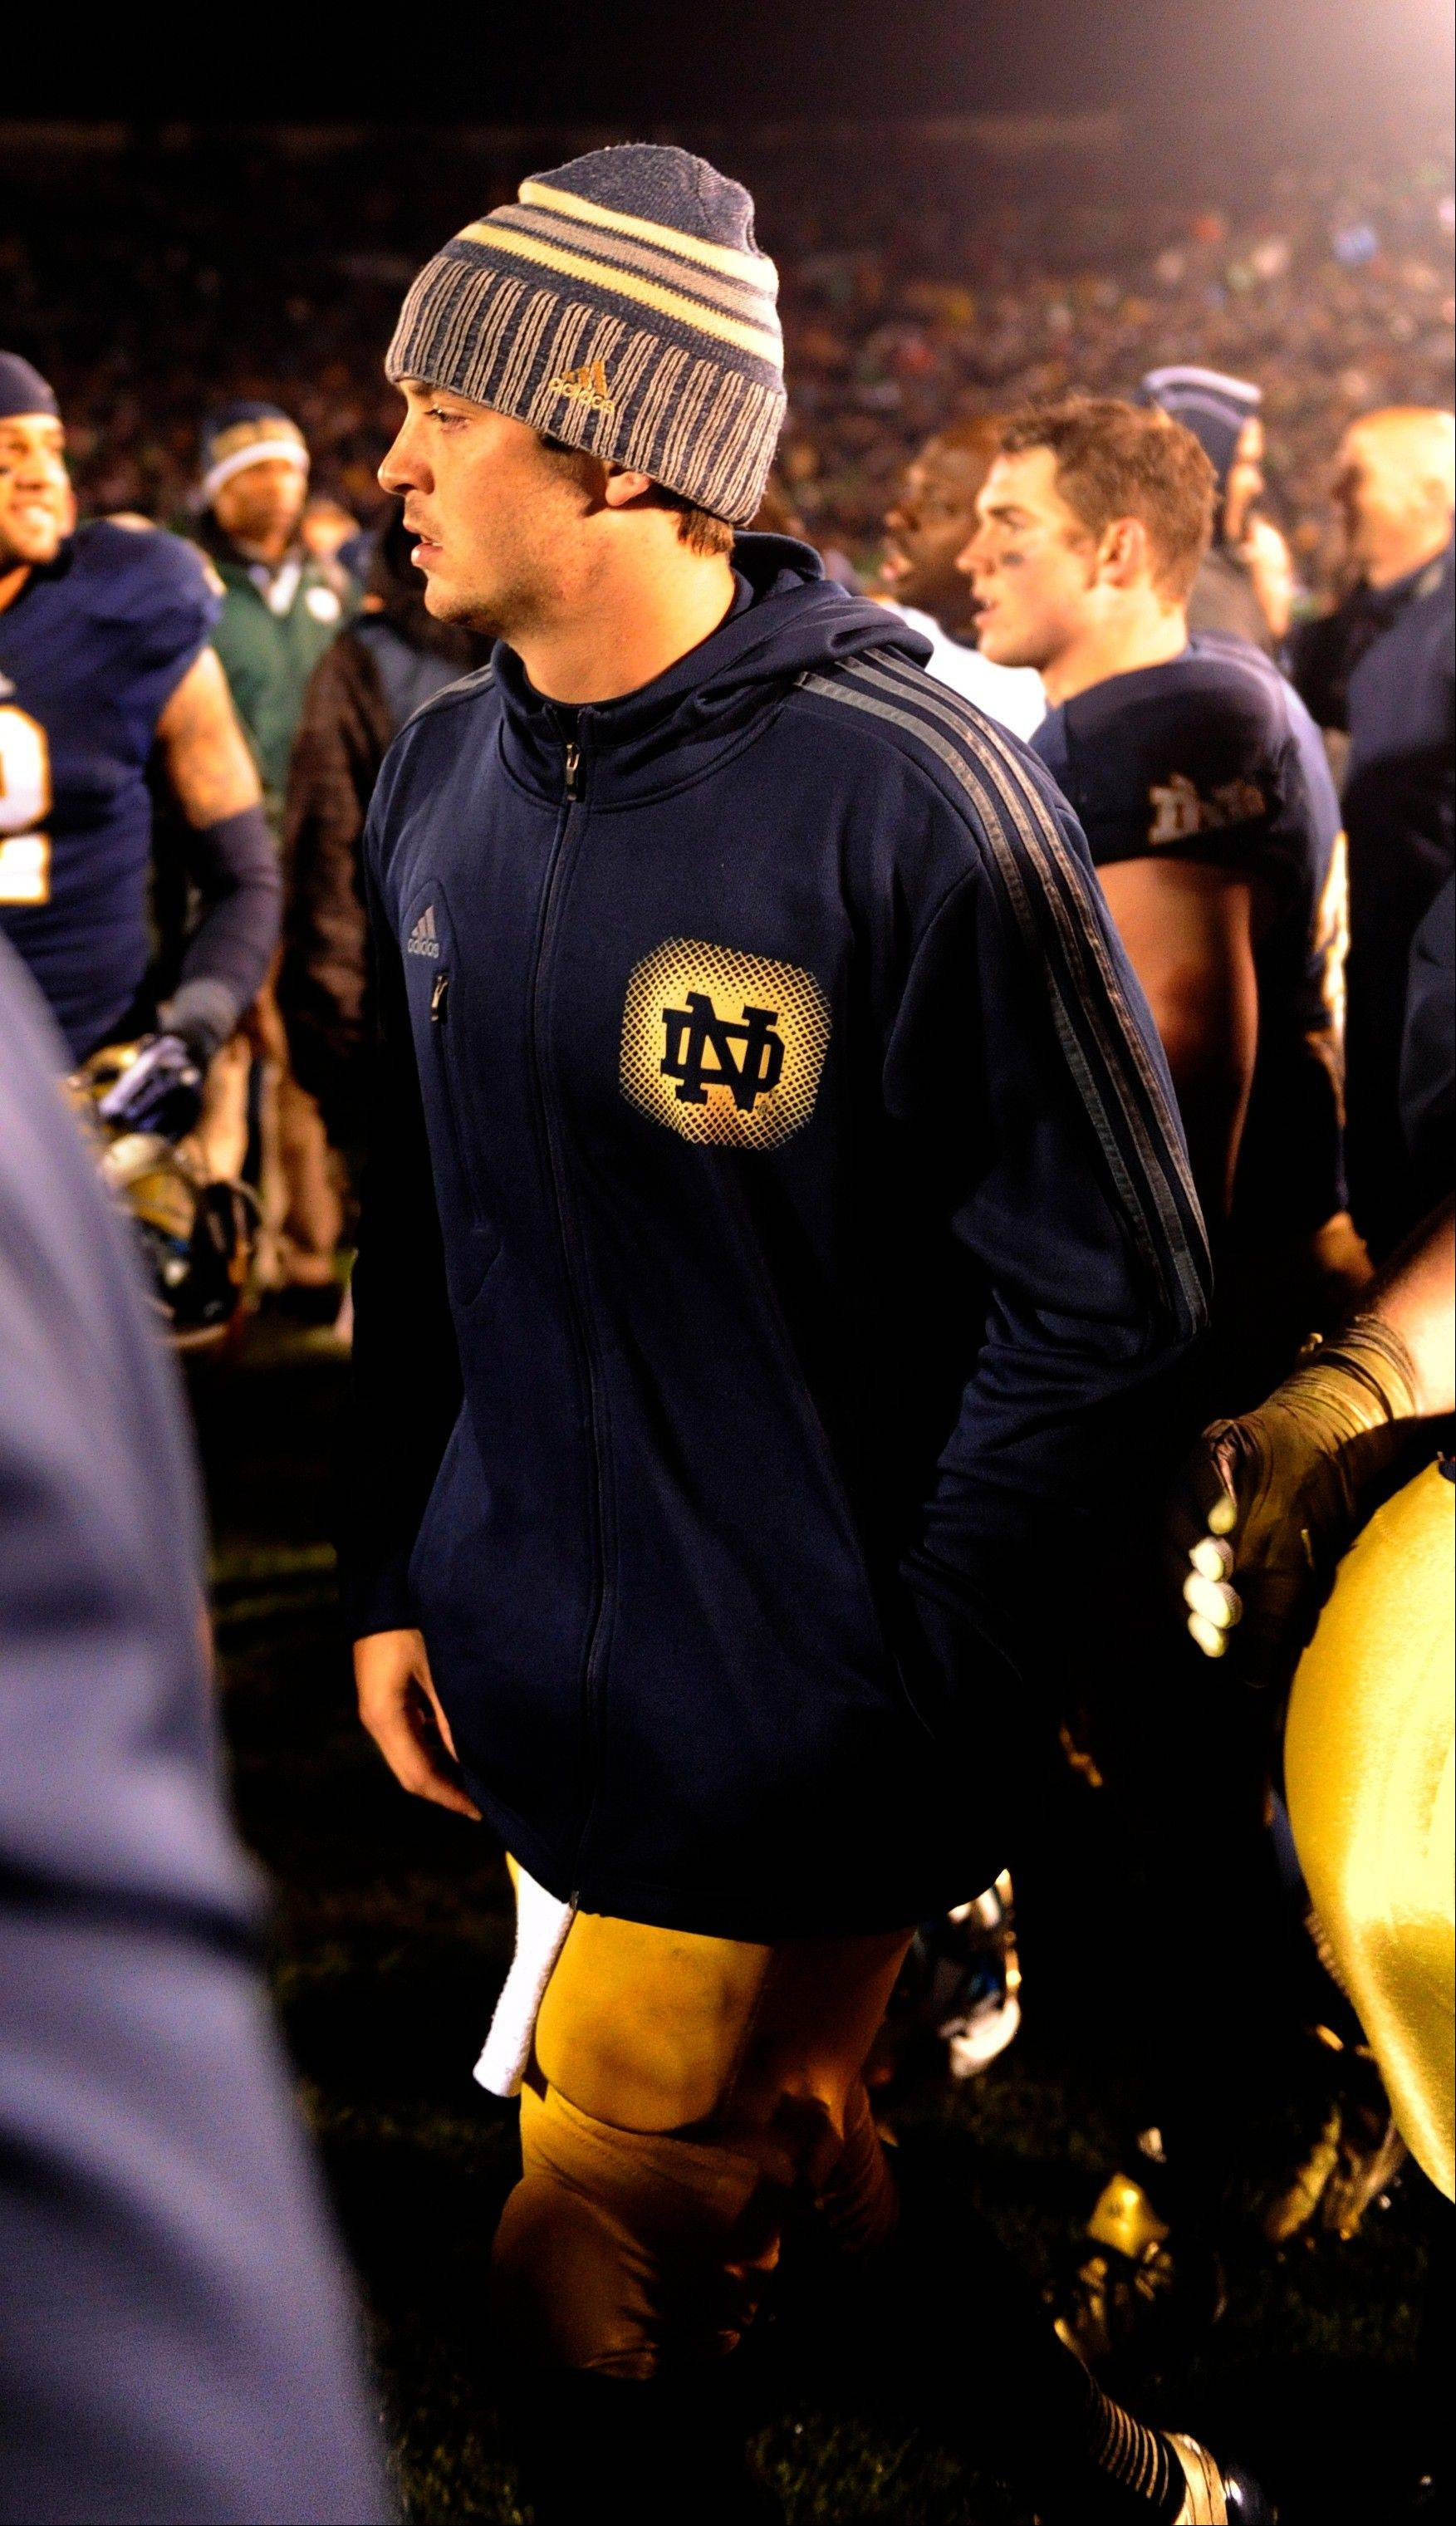 Notre Dame quarterback Tommy Rees walks off the field Saturday after Notre Dame's 14-10 victory over Southern California in South Bend. Rees was knocked out of the game in the third quarter.